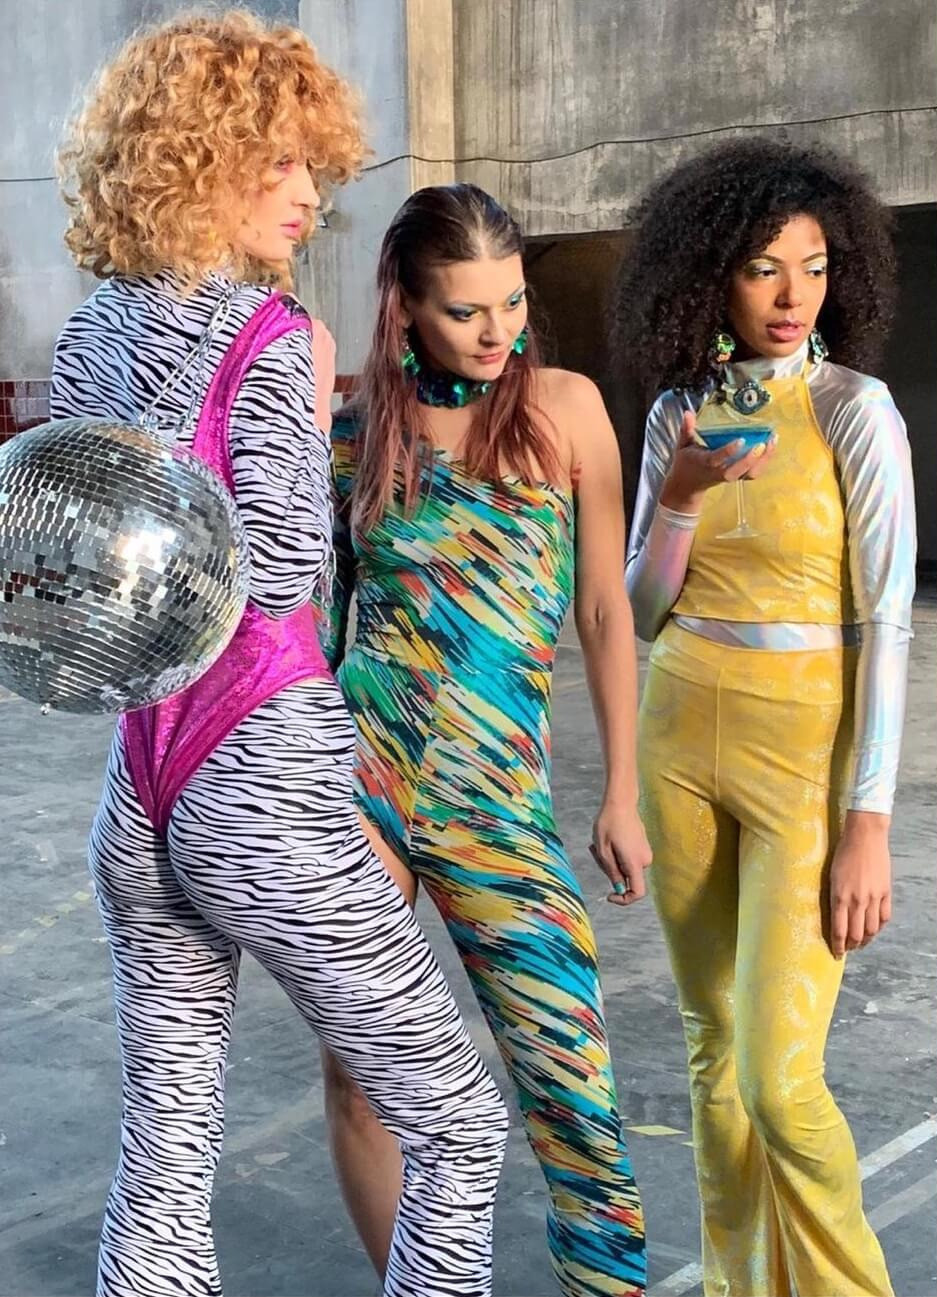 Diana May (middle) with models Jelena and Rita slaying for the new Lettau image video coming March 2021